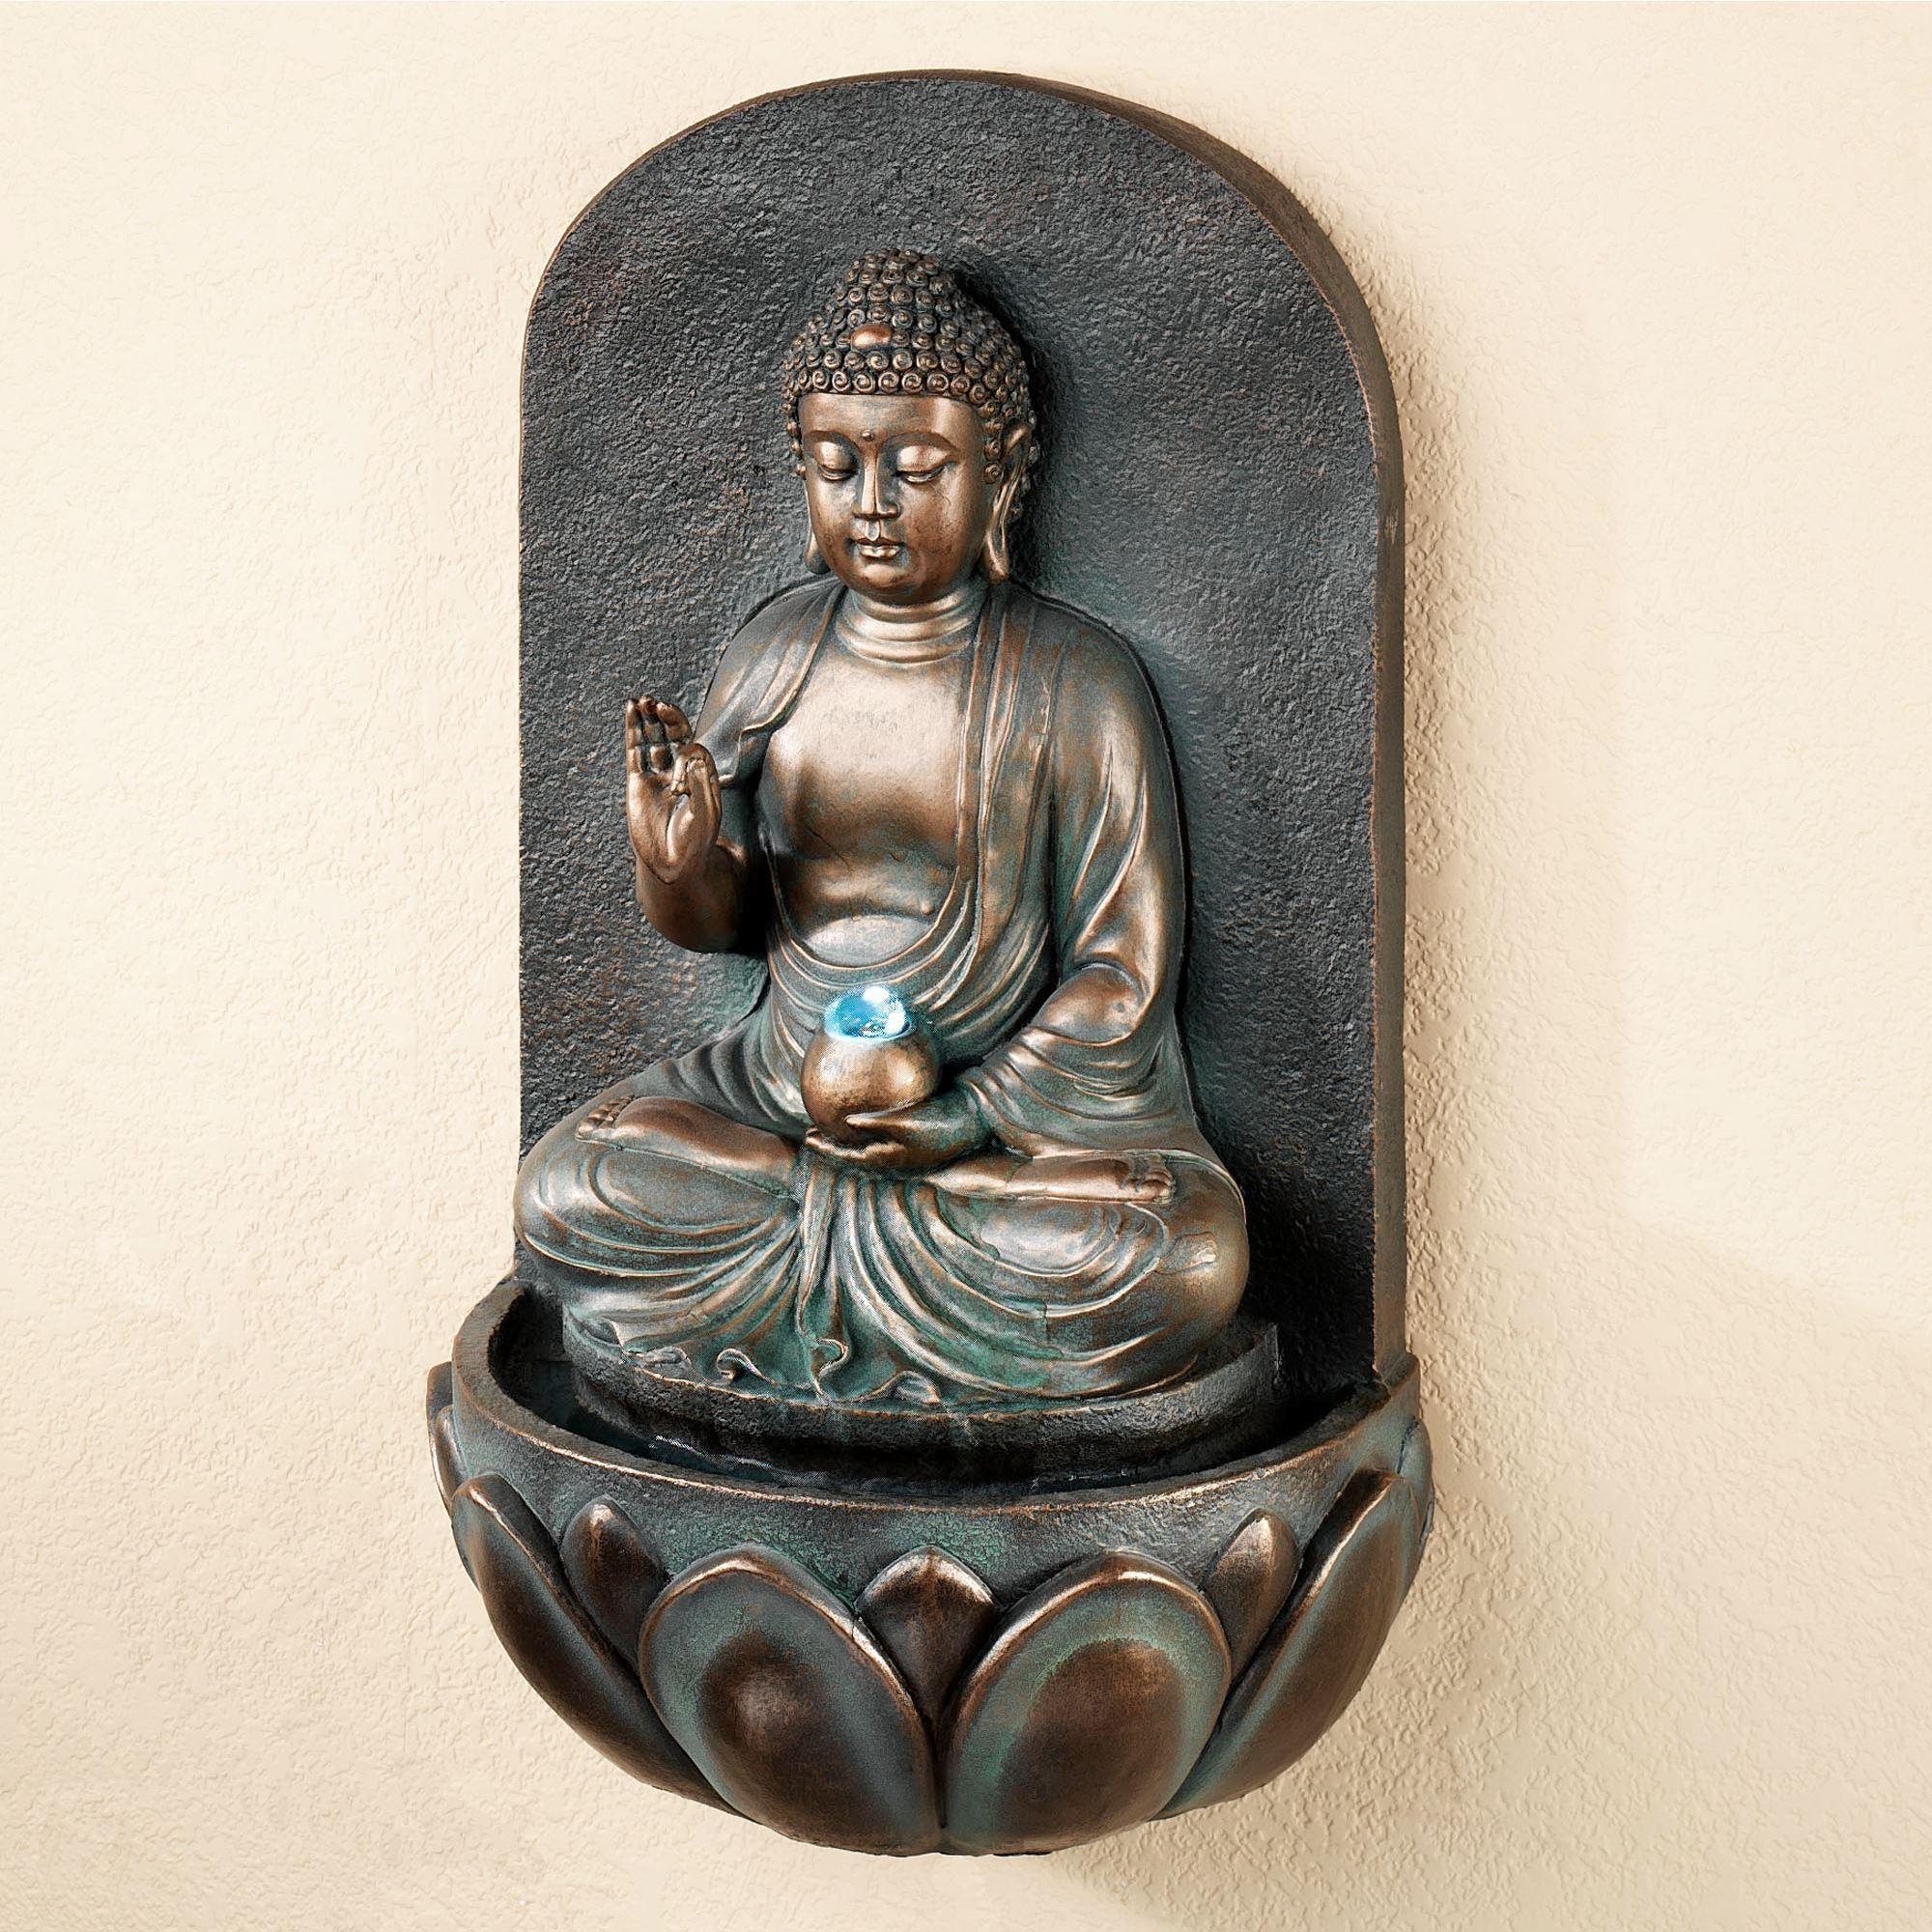 Reflecting Buddha Indoor Outdoor Wall Water Fountain Intended For Outdoor Buddha Wall Art (View 12 of 20)